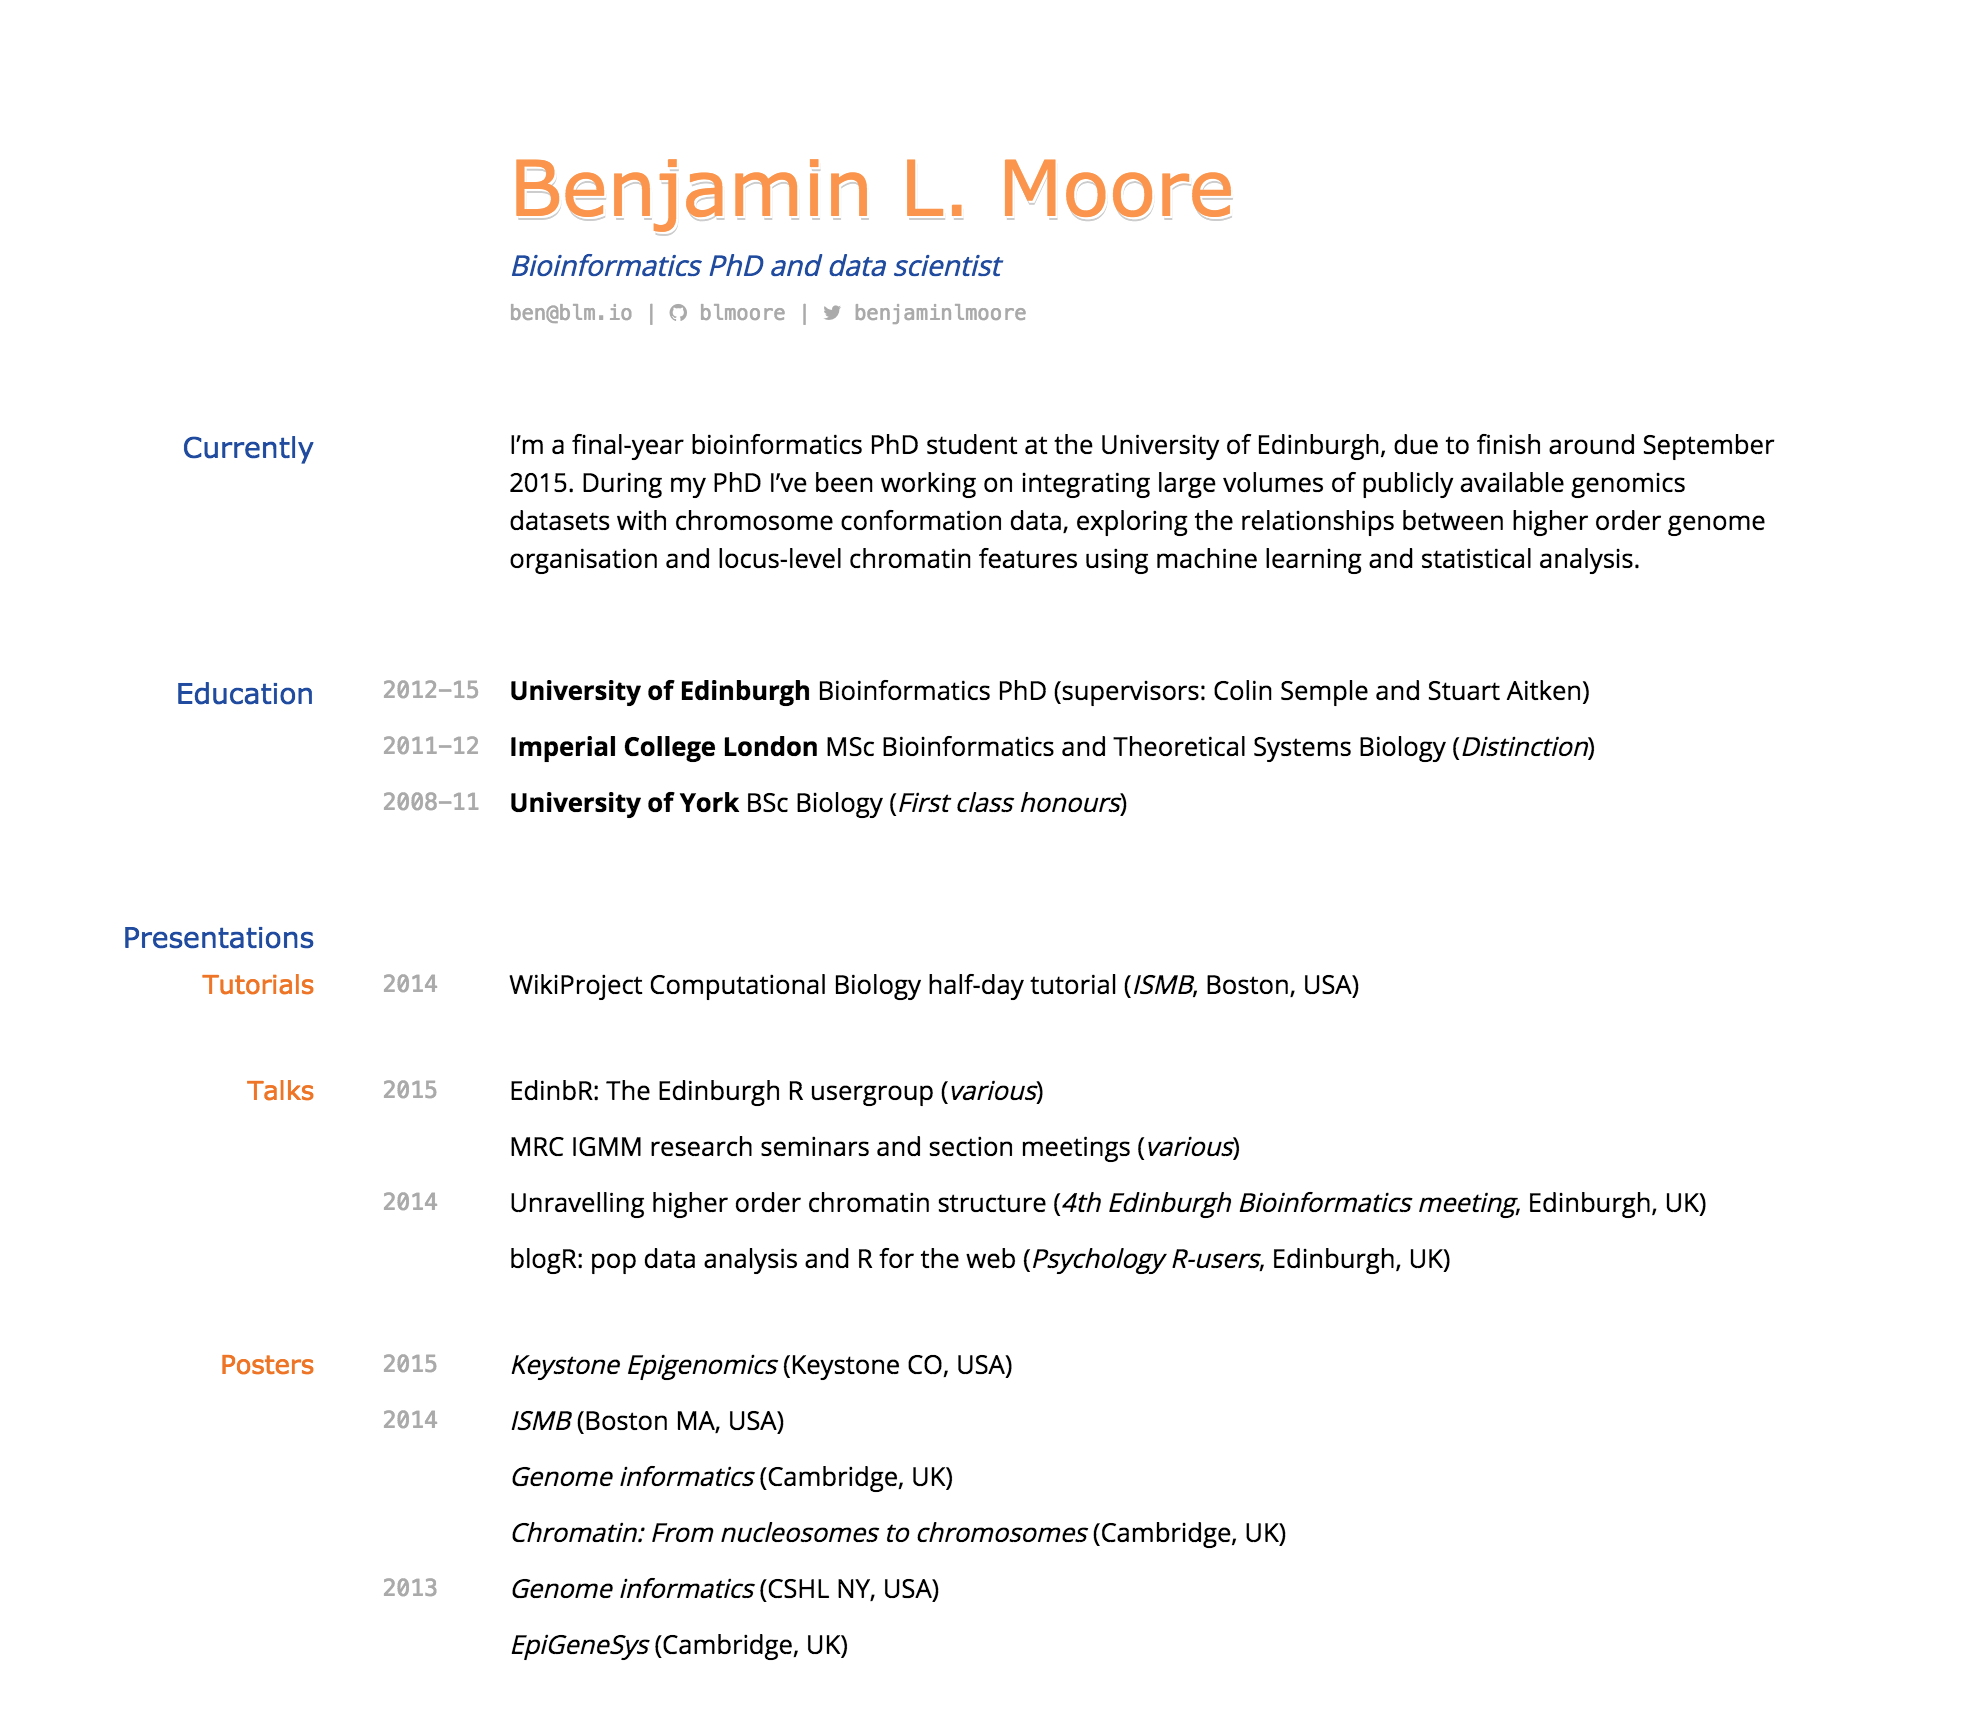 building an academic cv in markdown middot io i like the whitespace and clear separation of headings dates and details the underlying css layout has some technical issues the relative positions can